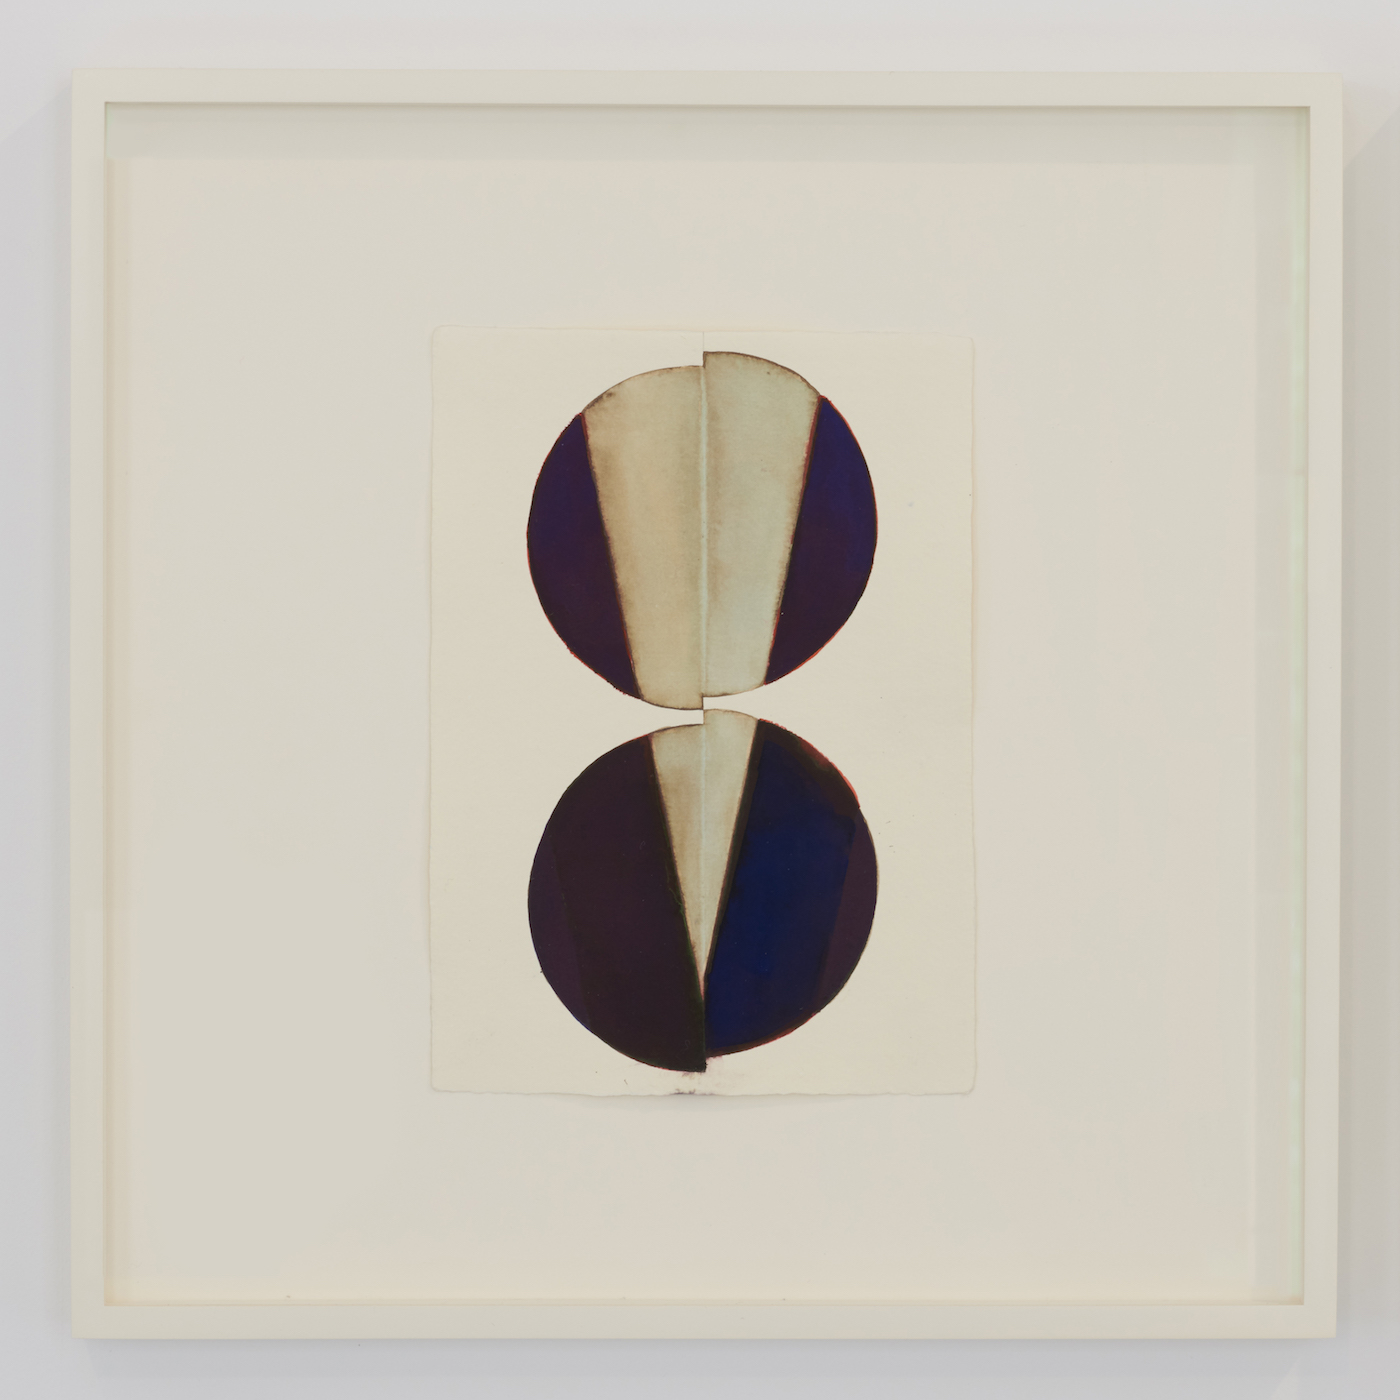 """Nathlie Provosty, """"Council, Untitled (15–52)"""" (2015), watercolor and walnut ink on paper, 8 x 6 in (courtesy Nathalie Karg Gallery)"""